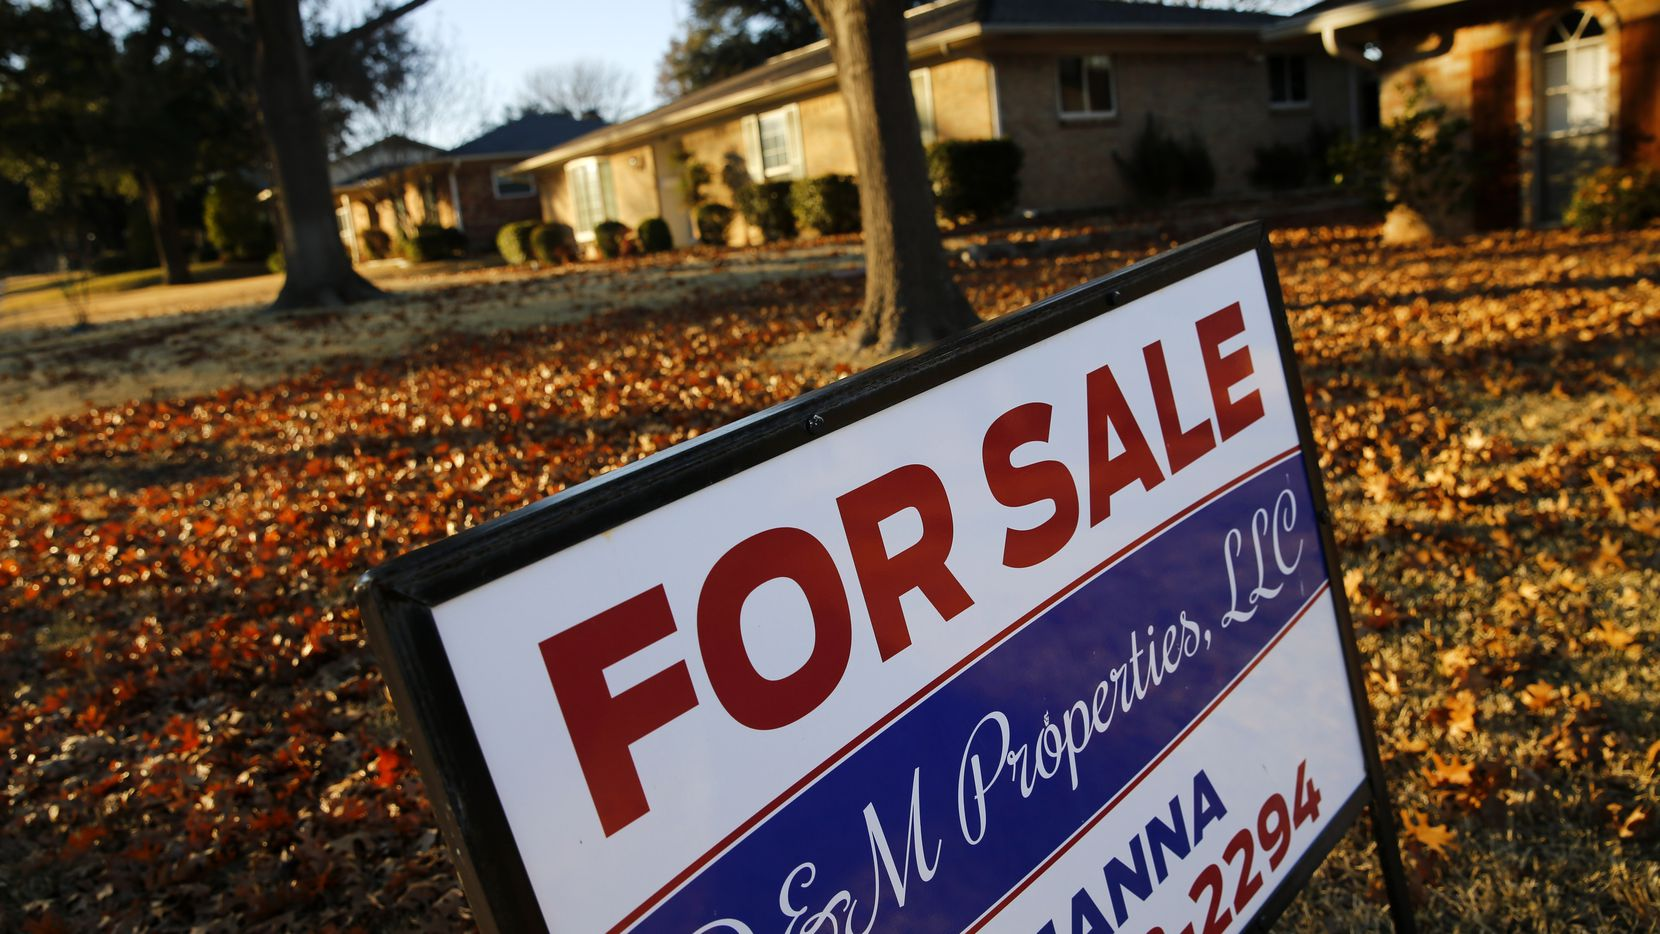 Most out-of-town Dallas-area home shoppers on Zillow's website hail from Los Angeles, the home marketing firm found.